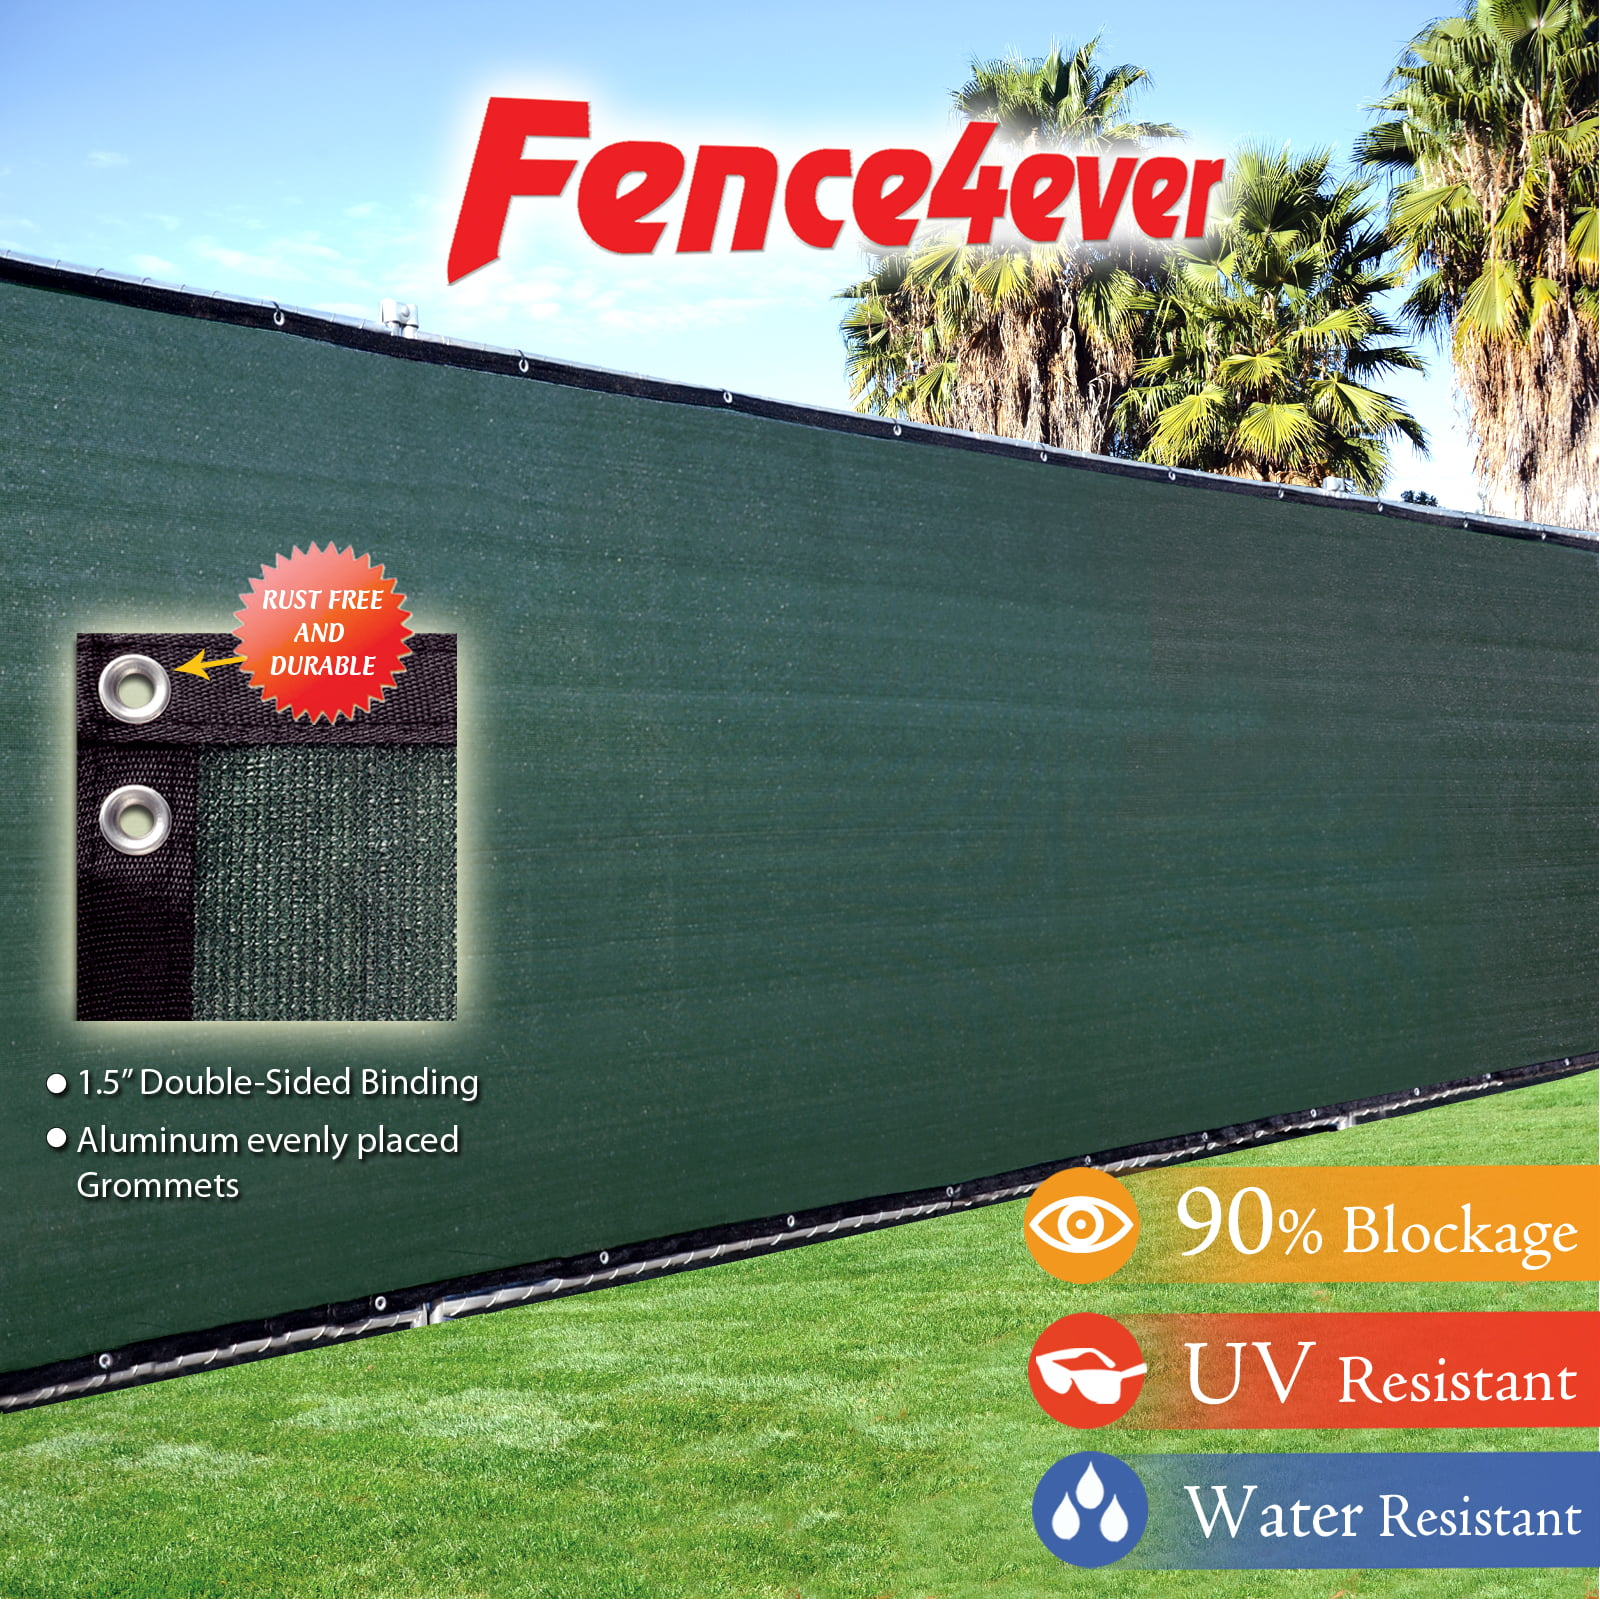 Fence4ever Dark Green 5'x50' Fence Privacy Screen Windscreen Shade Cover Mesh Fabric Tarp by